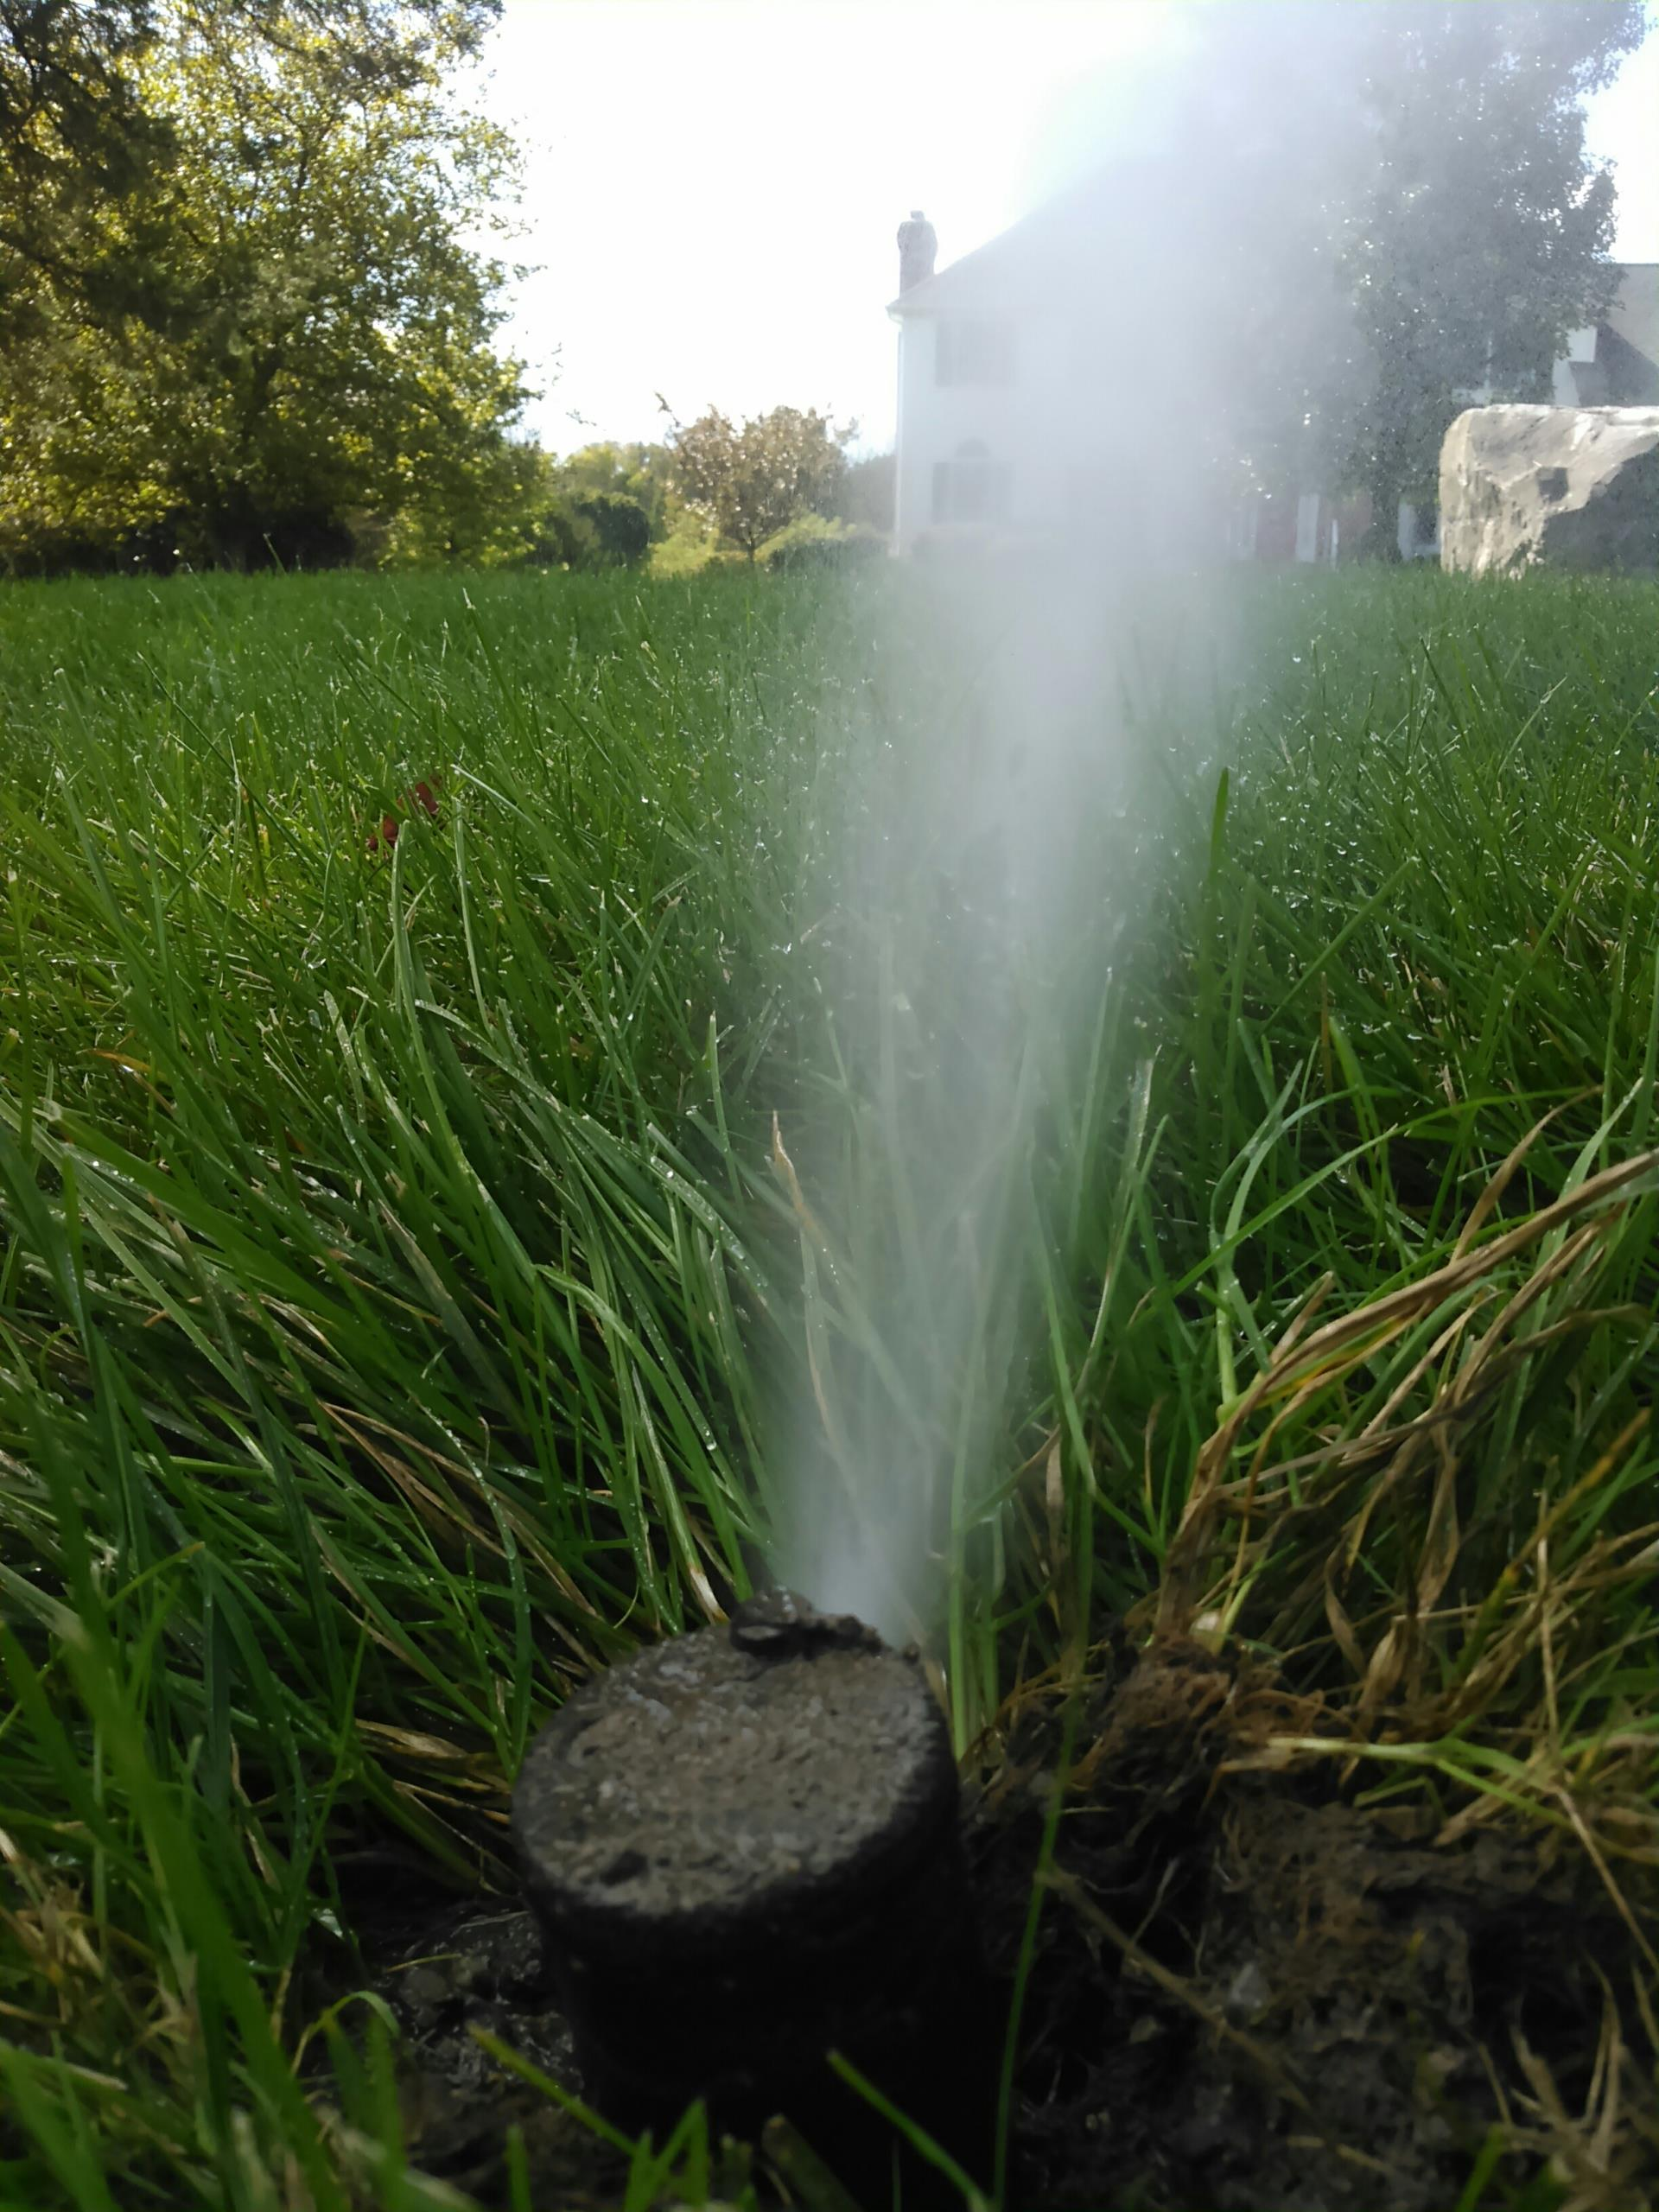 Blow out water of sprinkler system to prevent freezing damage on pipes and backflow during the winter